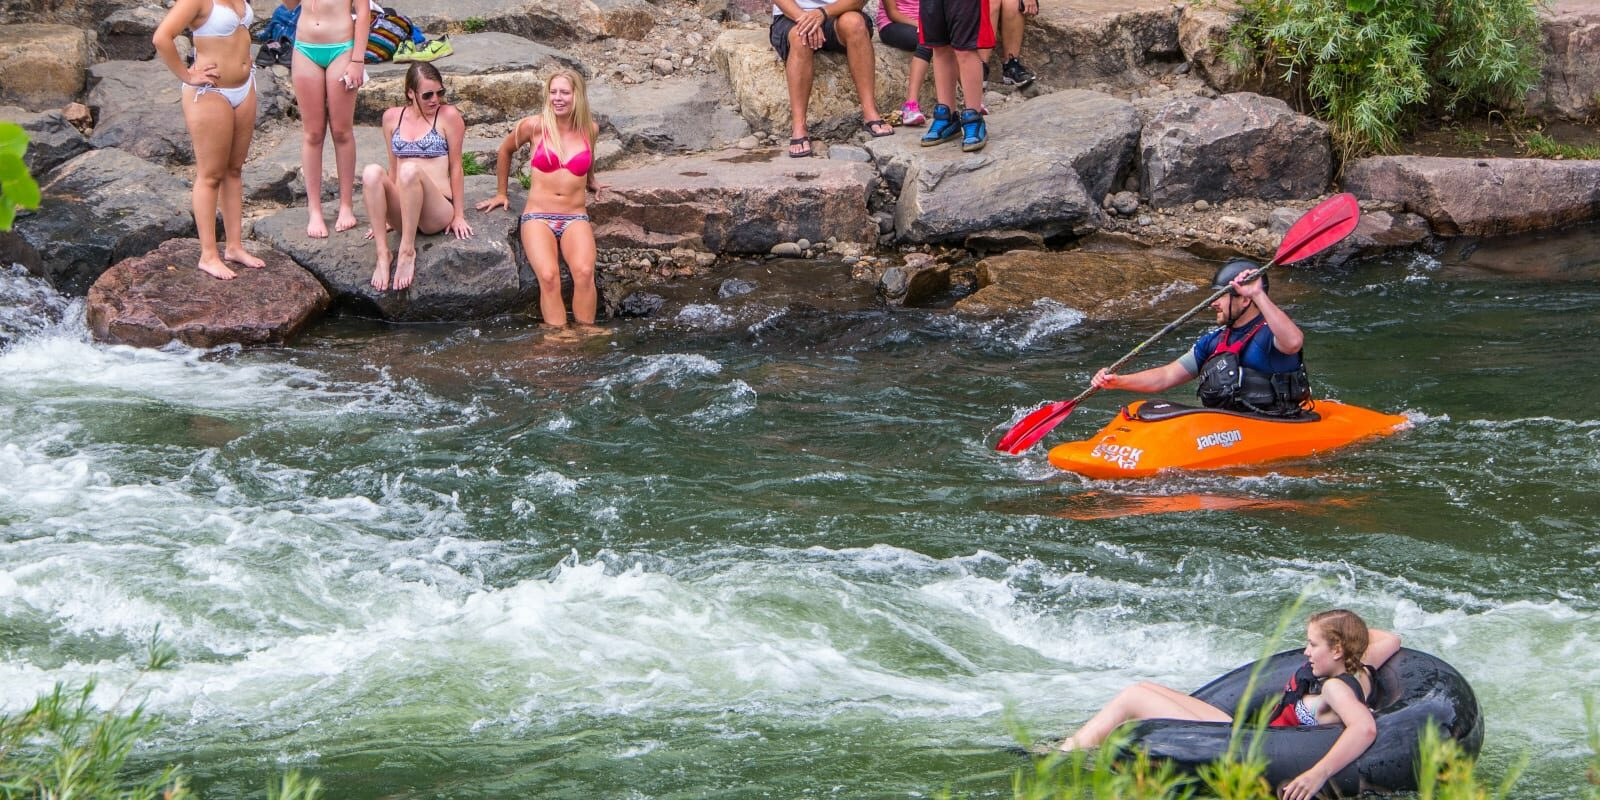 Summertime at Clear Creek, CO